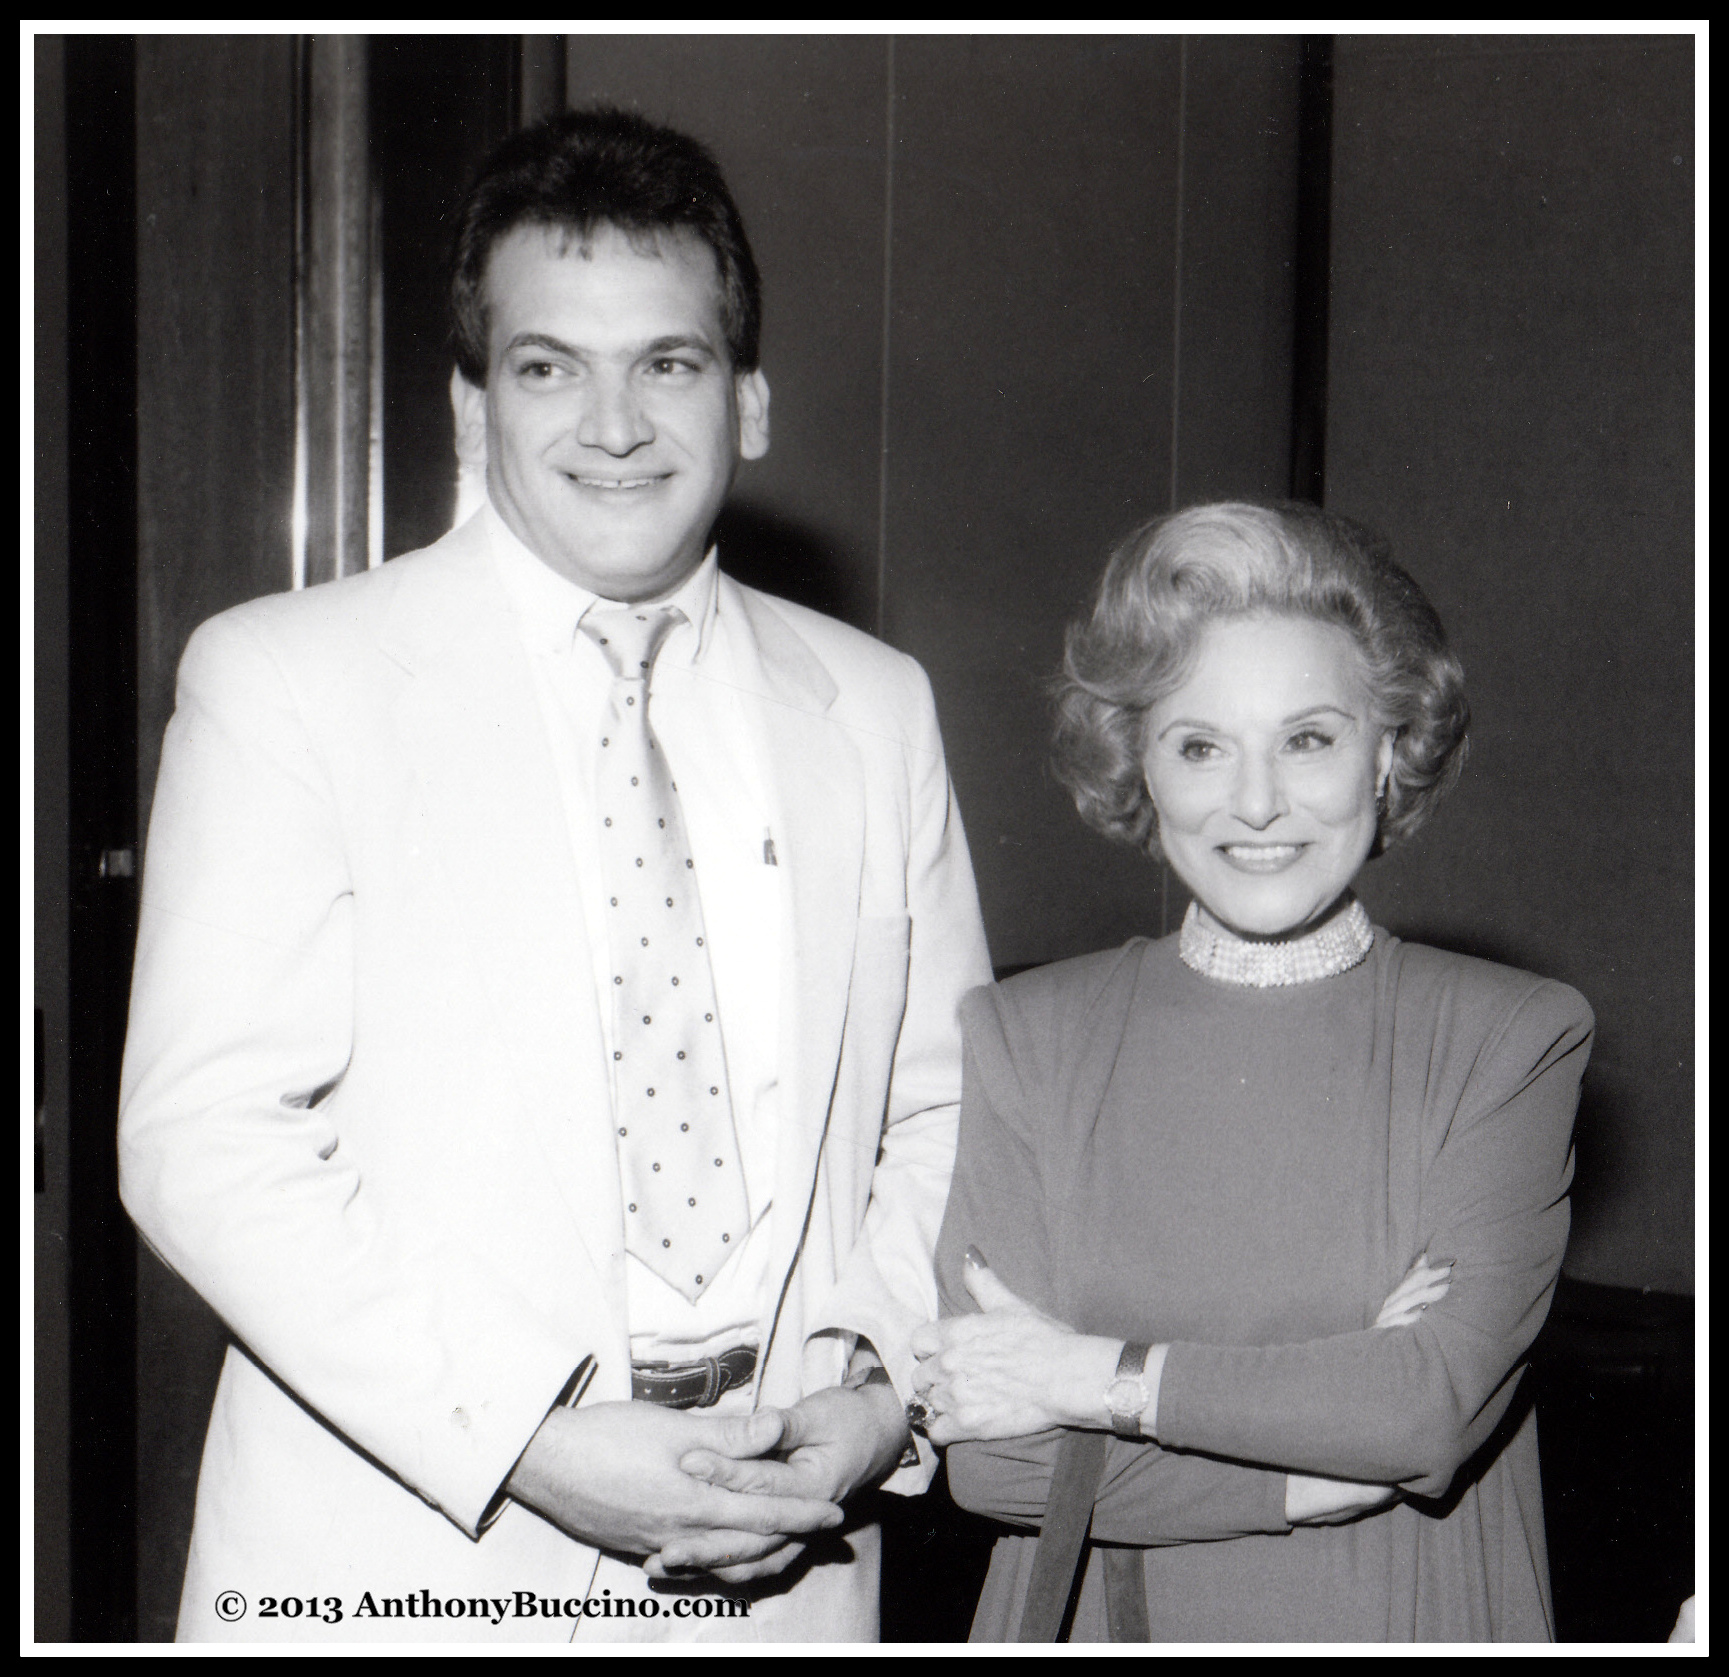 Anthony Buccino and Dear Abby in a BBSI file photograph.